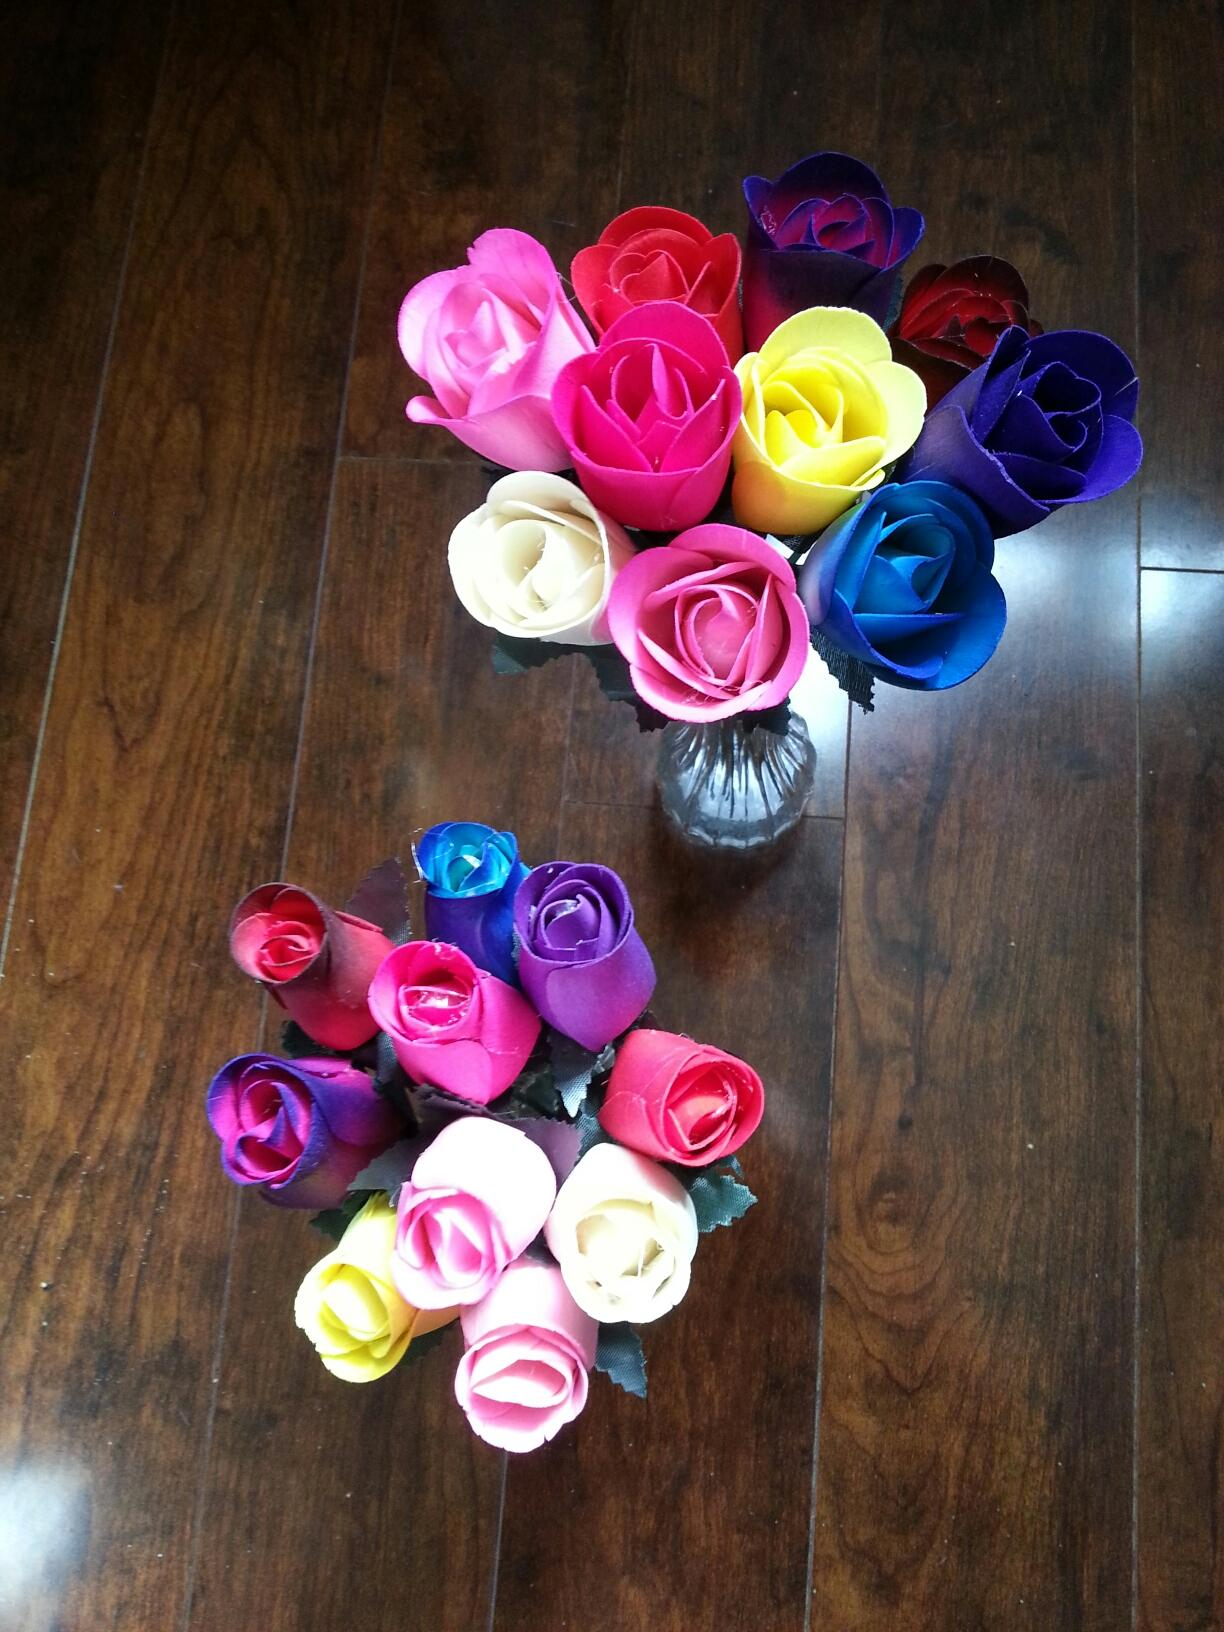 Unscented Wooden Roses